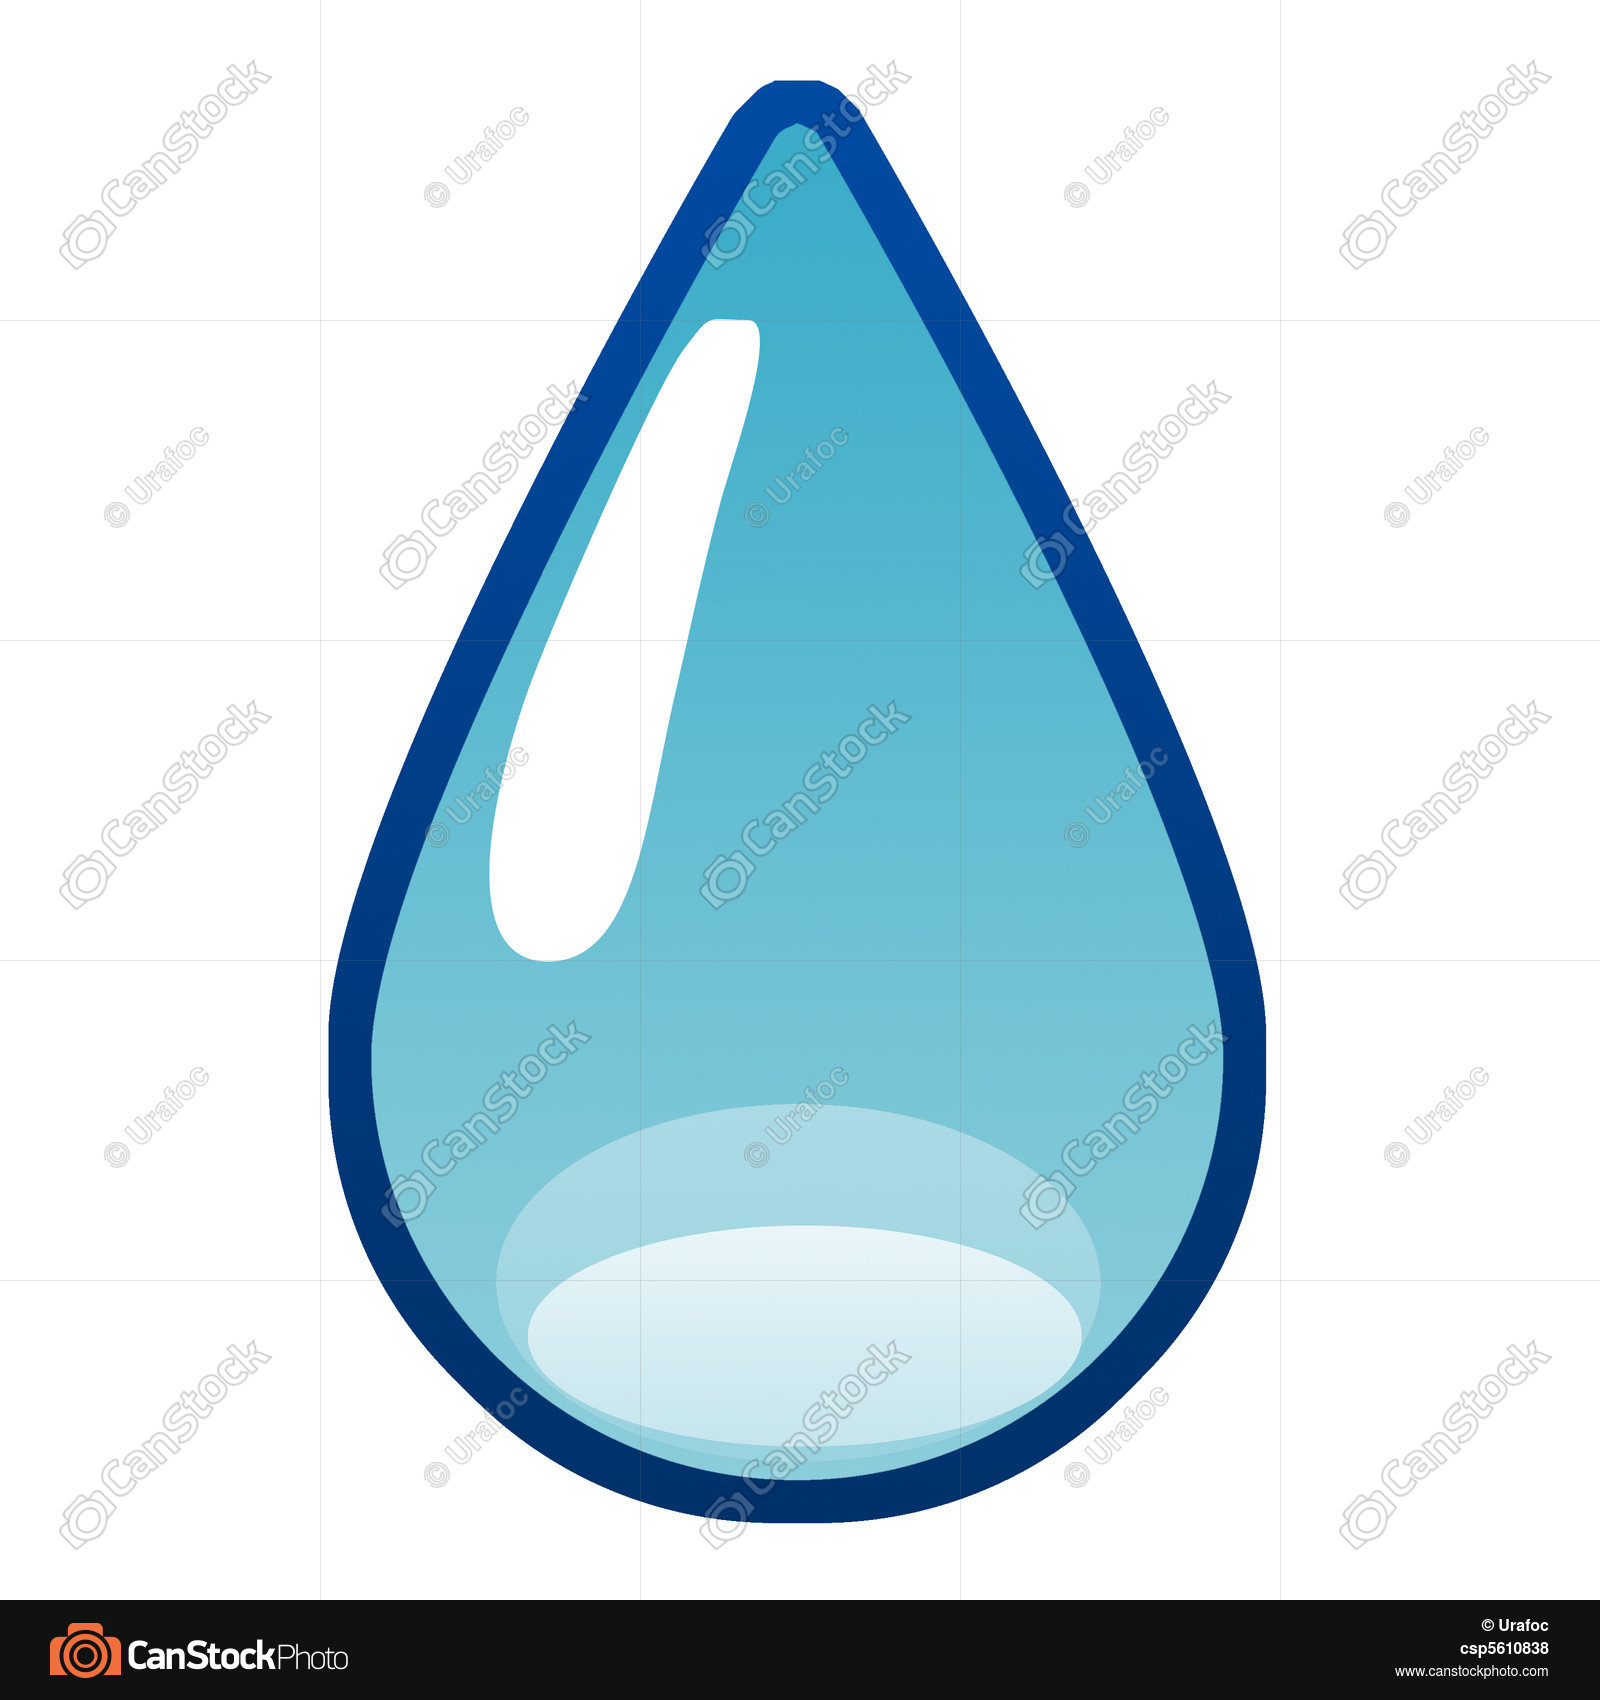 Simple water drop illustration stock illustration - Search EPS Clip ...